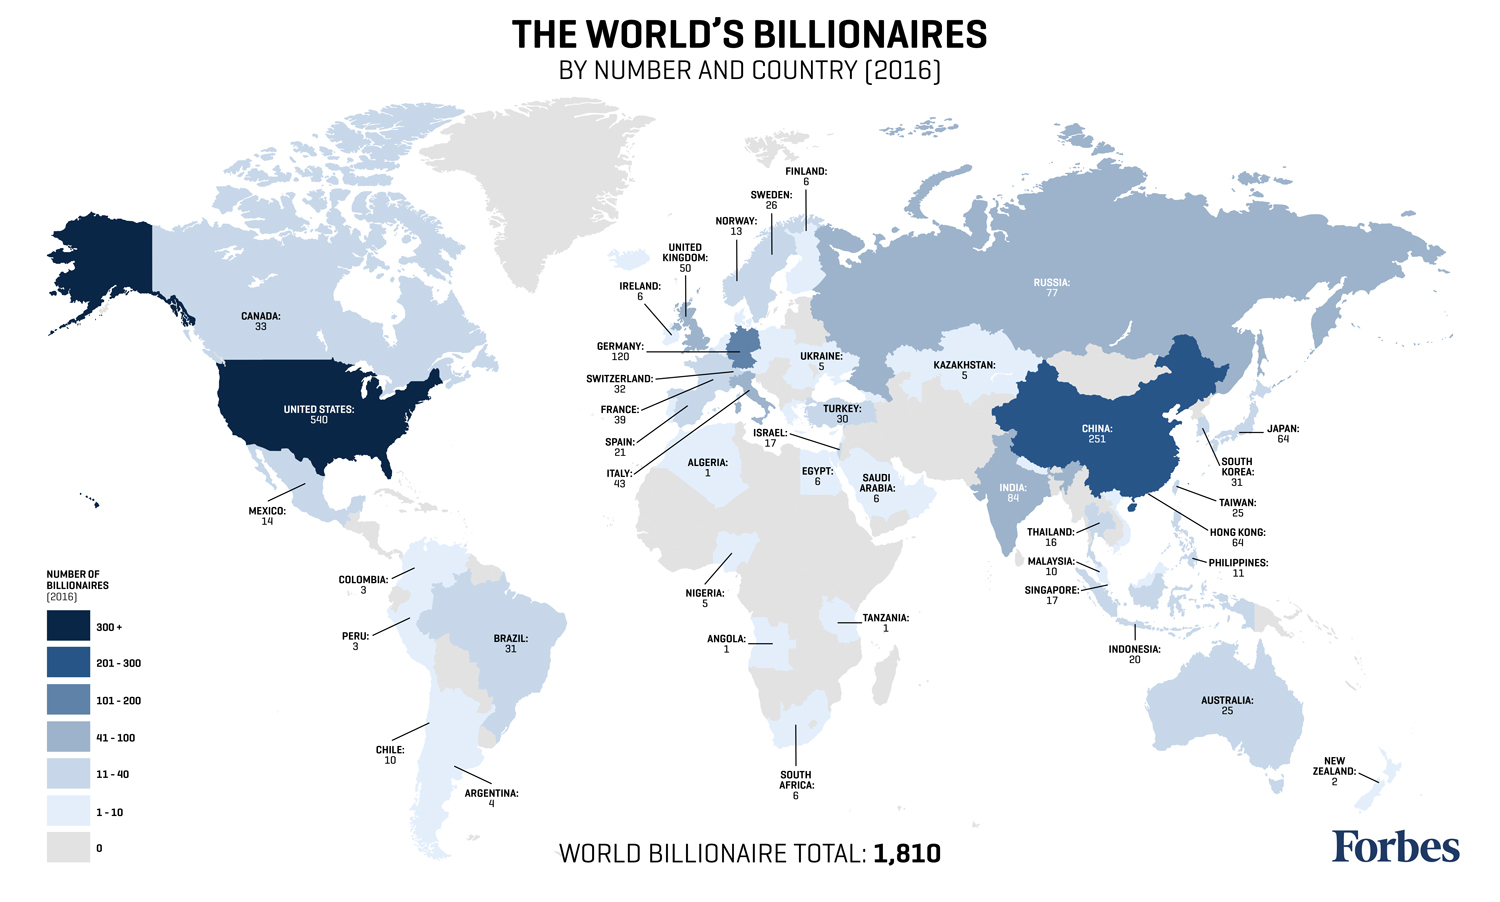 Thw World's billionaires by number & country (2016)